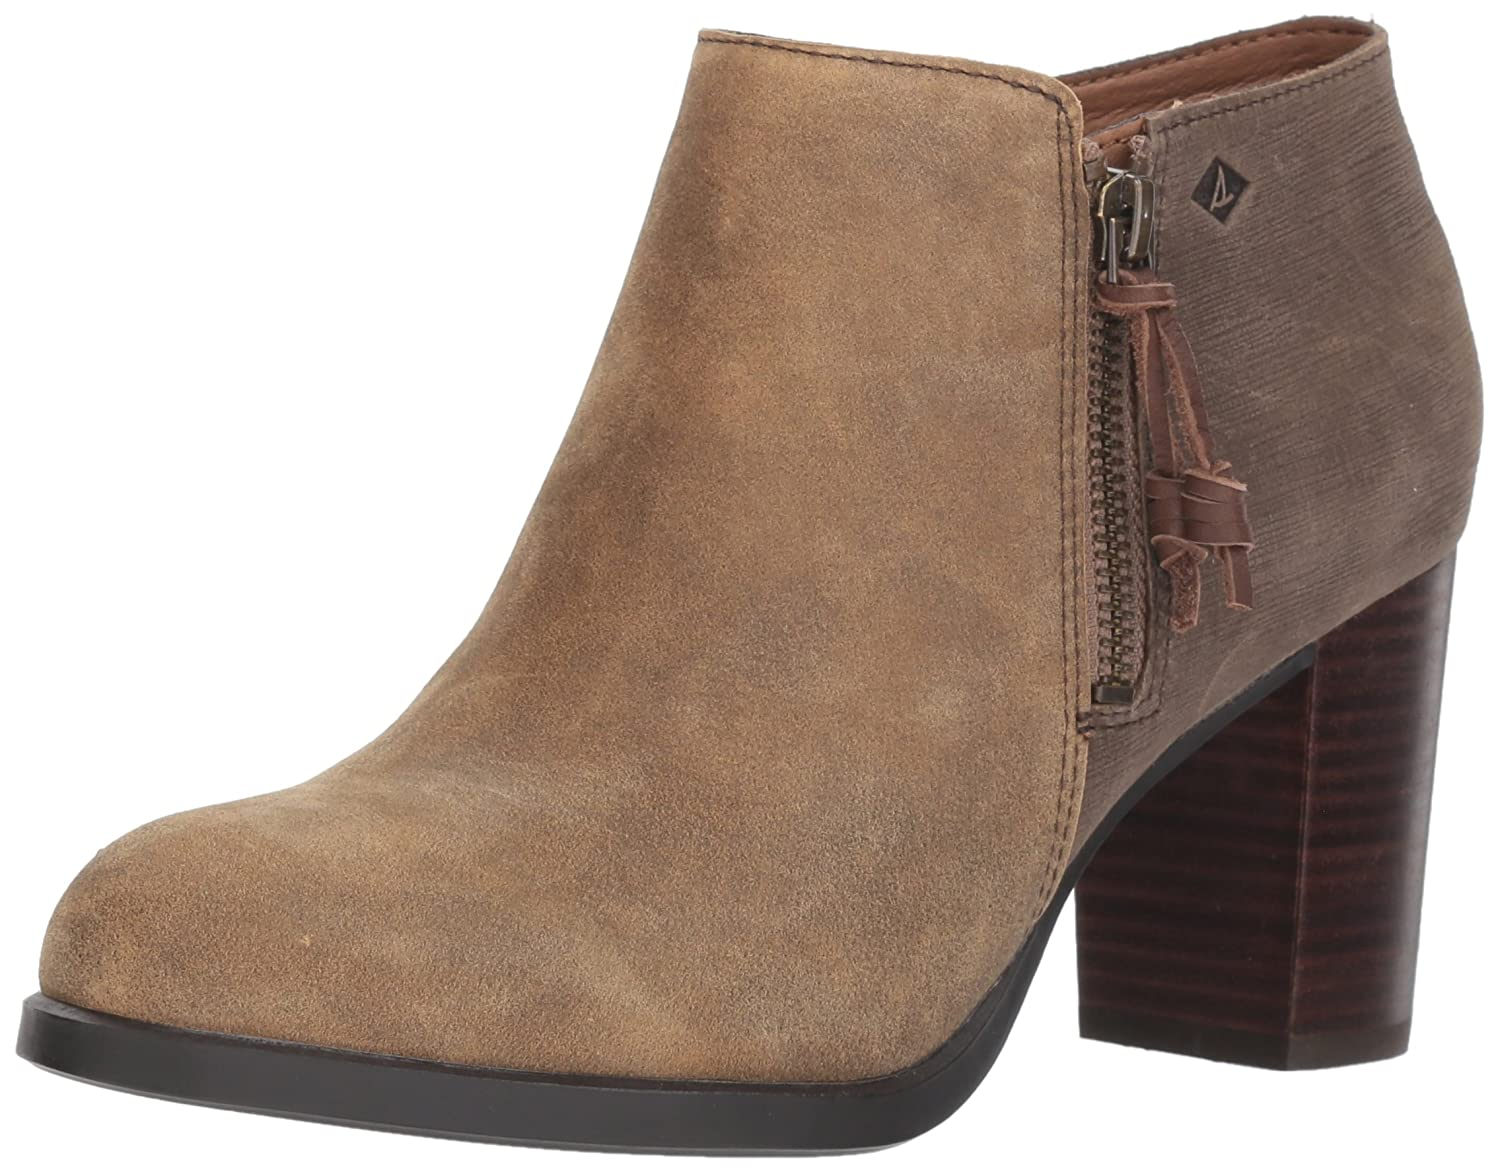 Sperry Top-Sider Women's Dasher Lille Ankle Bootie B019X5C6IQ 5.5 B(M) US|Brown